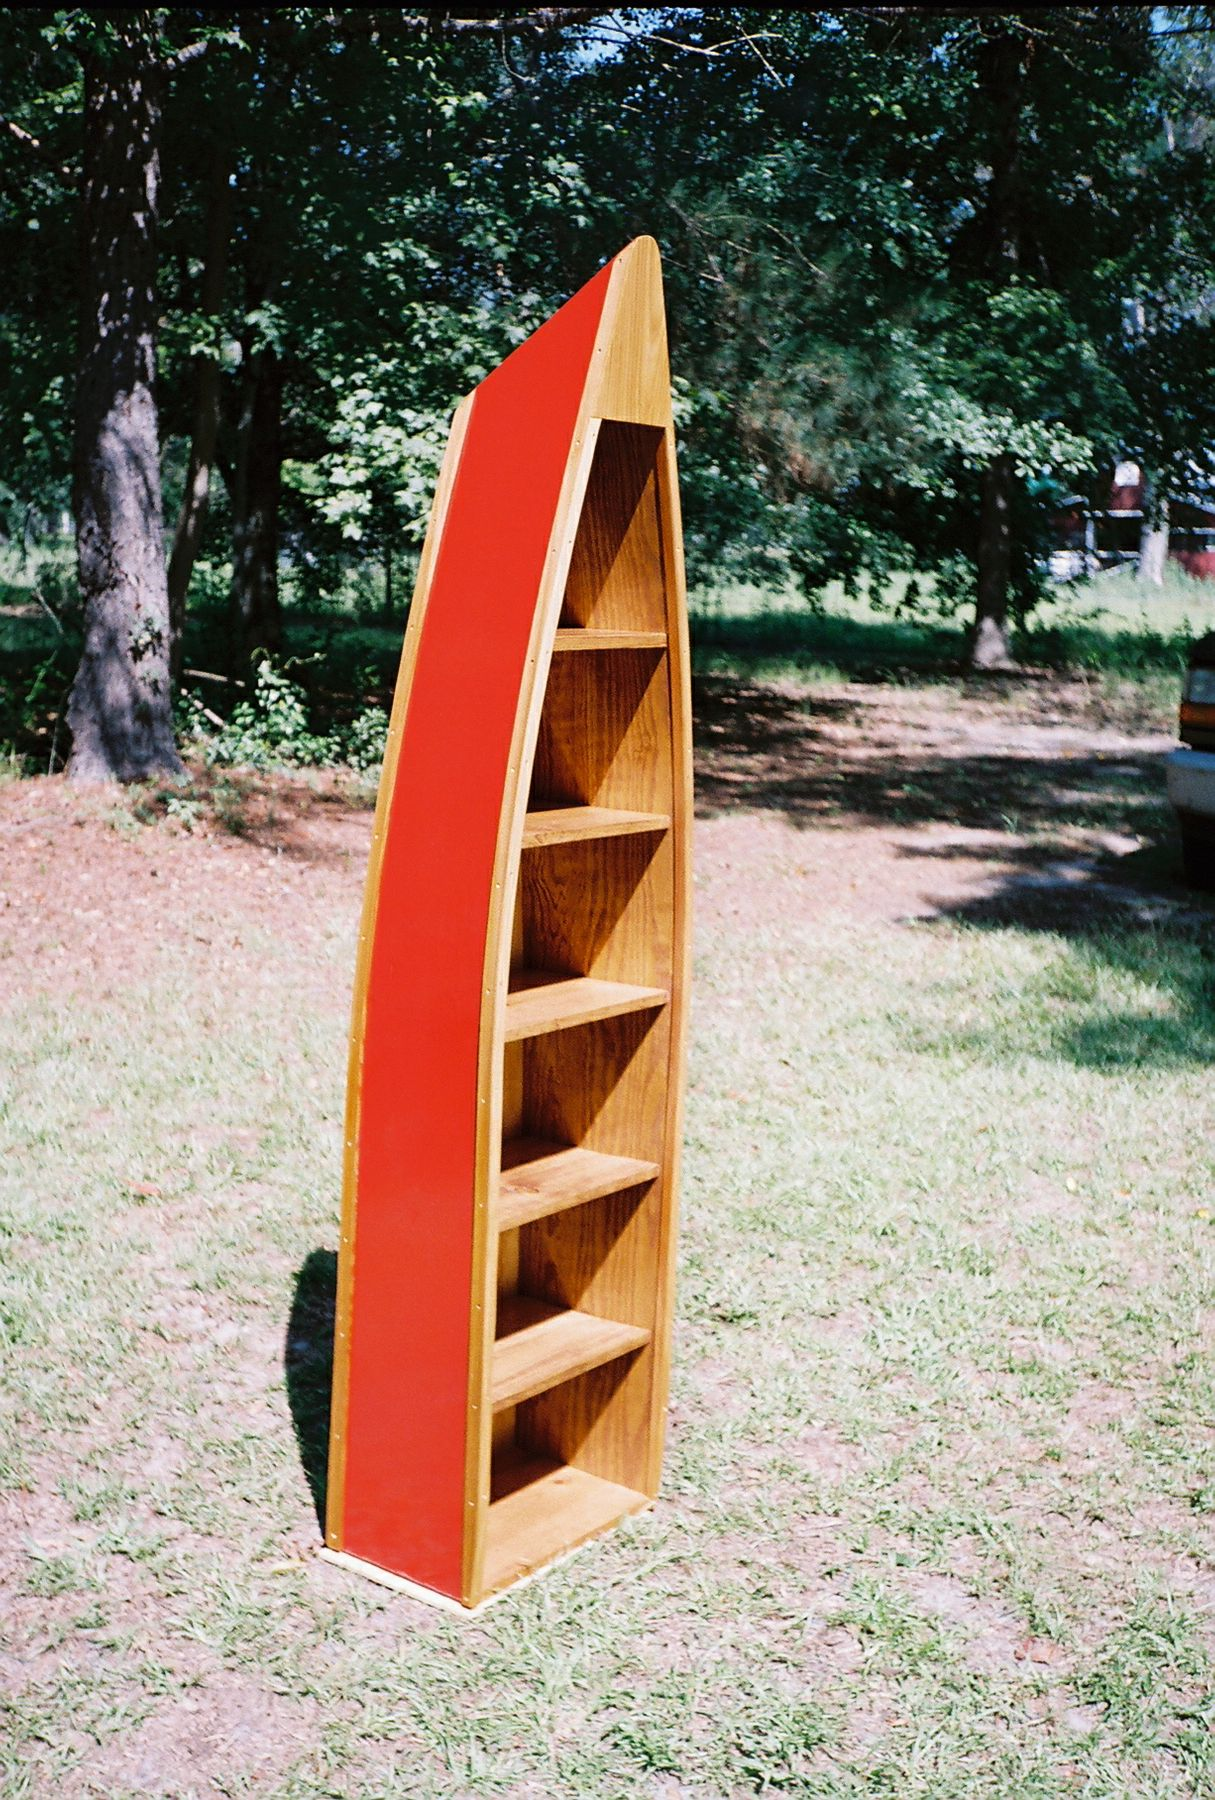 Handcrafted Boat Bookcase Boat Shelves 6 1 2ft Canoe Shelf Home Decor Boat Bookcase Bookcase Lake House Interior